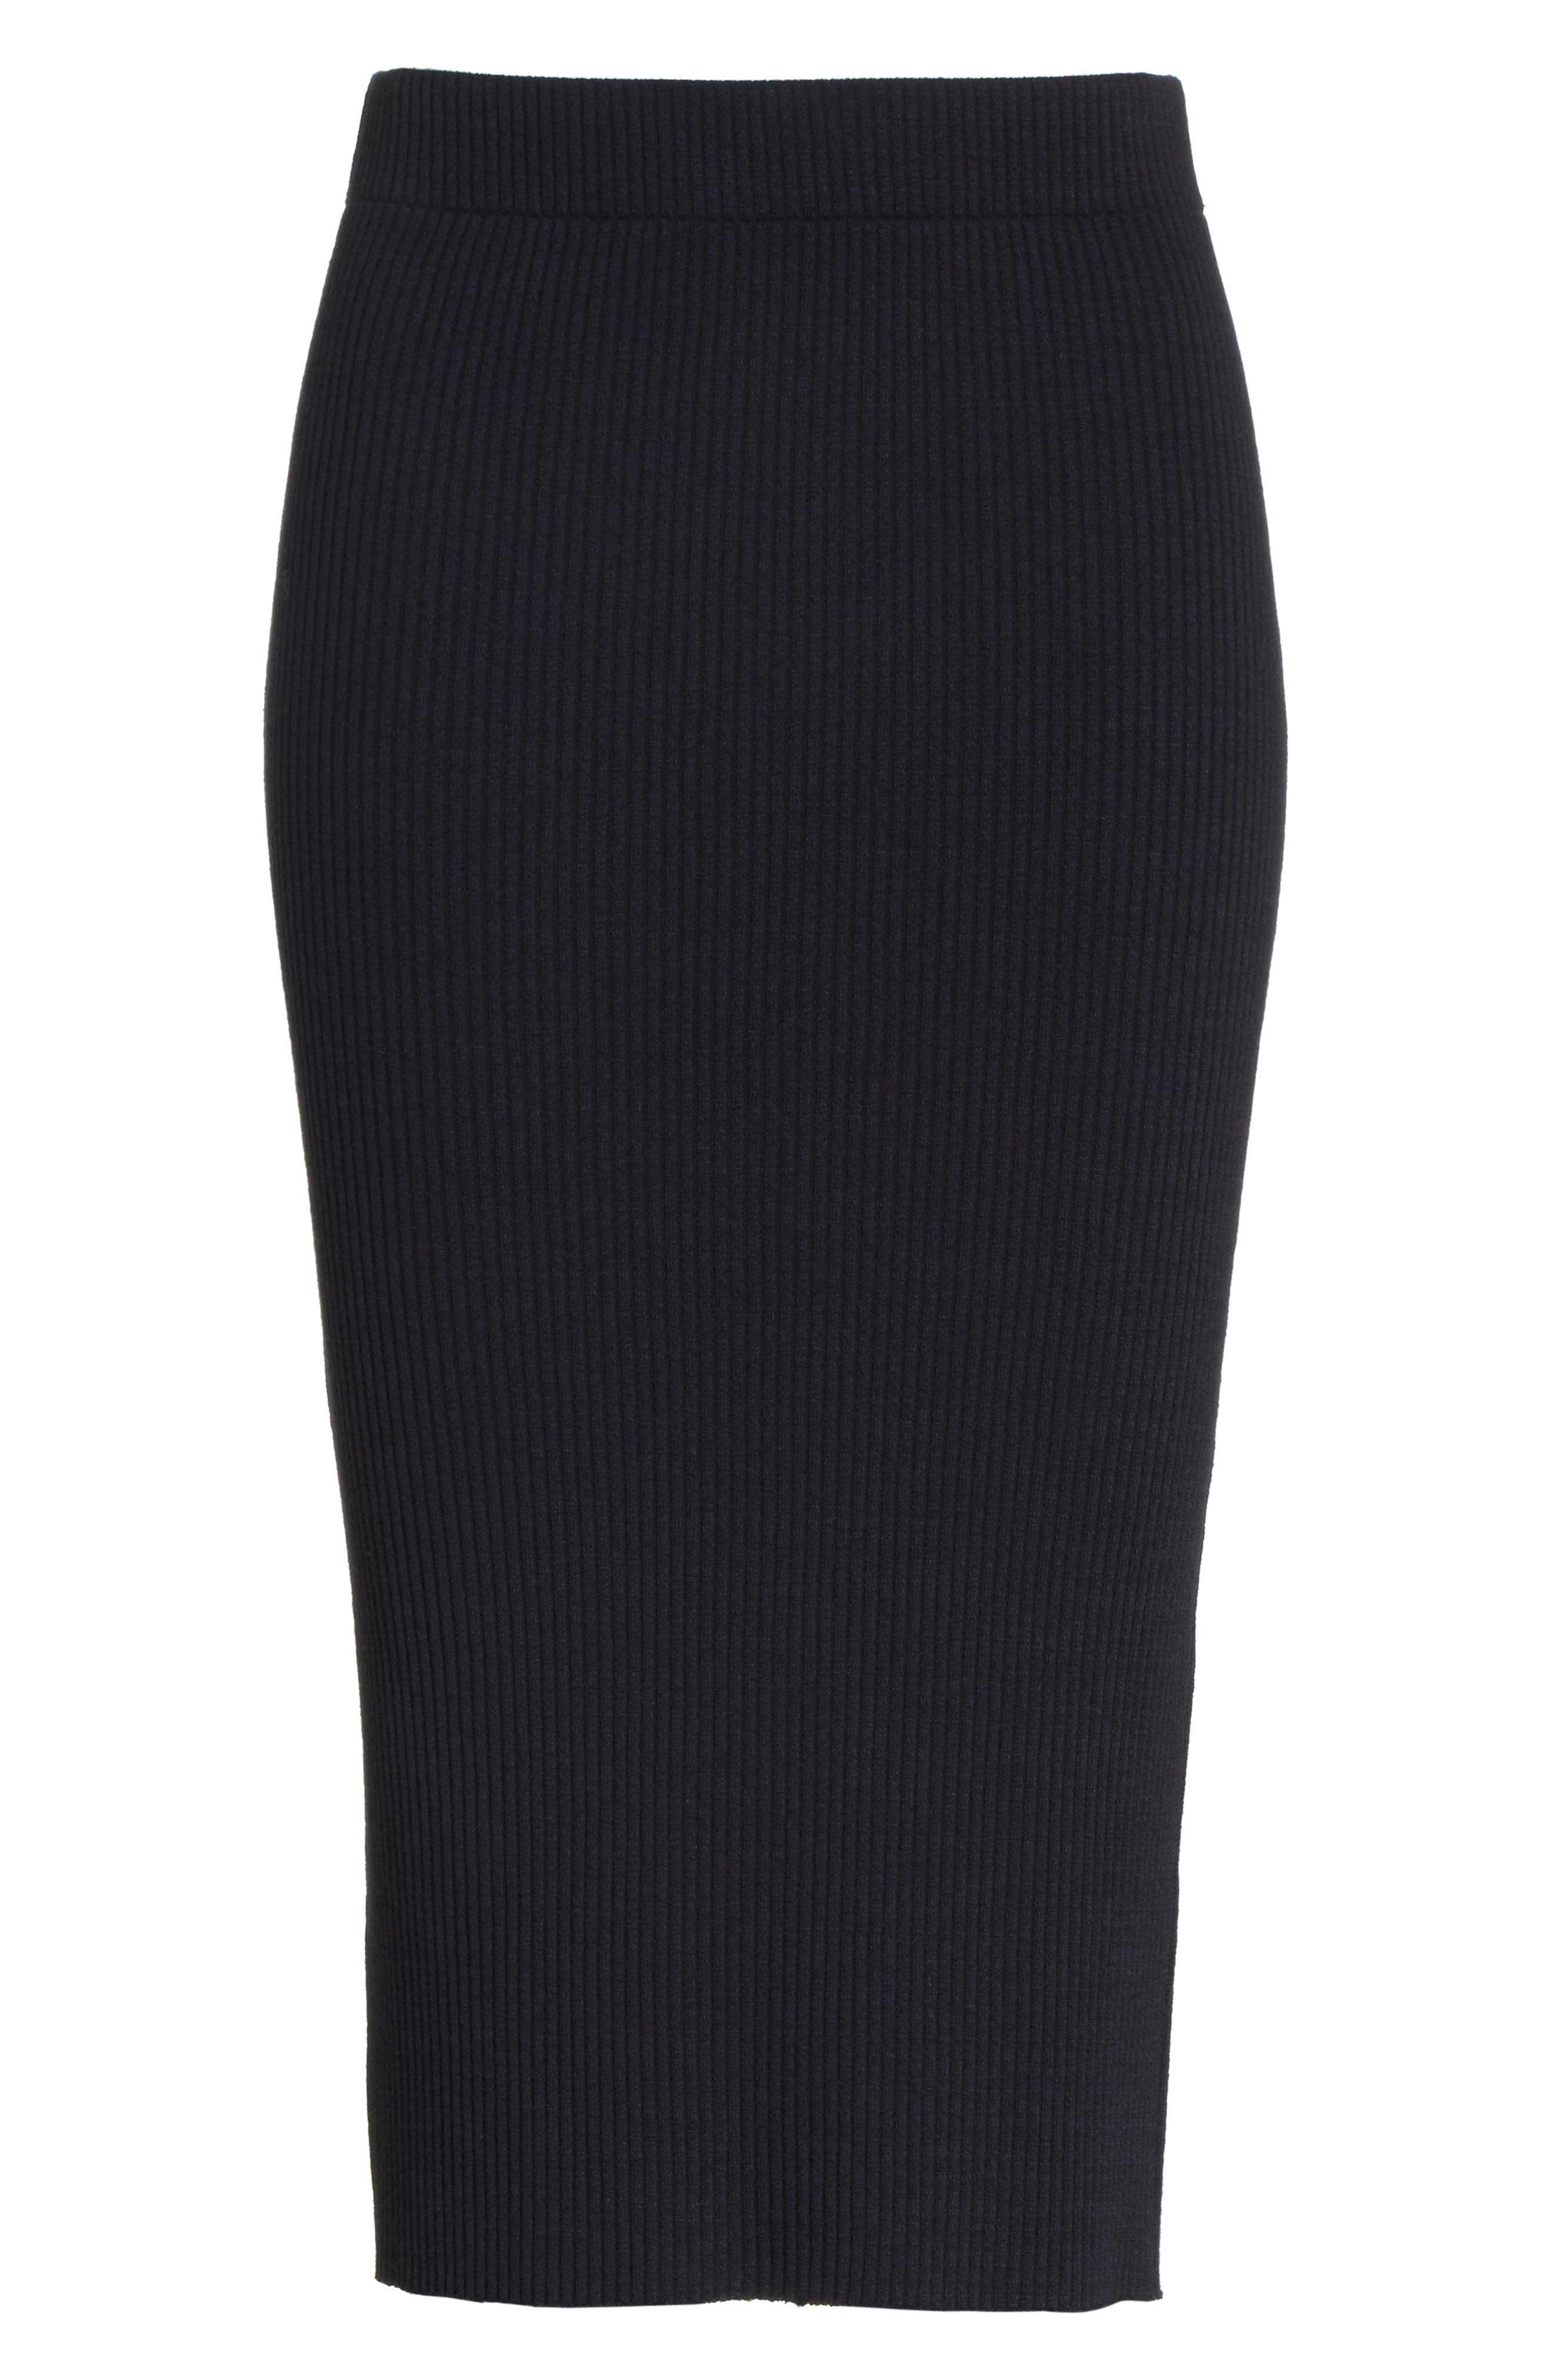 Ribbed Pencil Skirt,                             Alternate thumbnail 6, color,                             Coastal